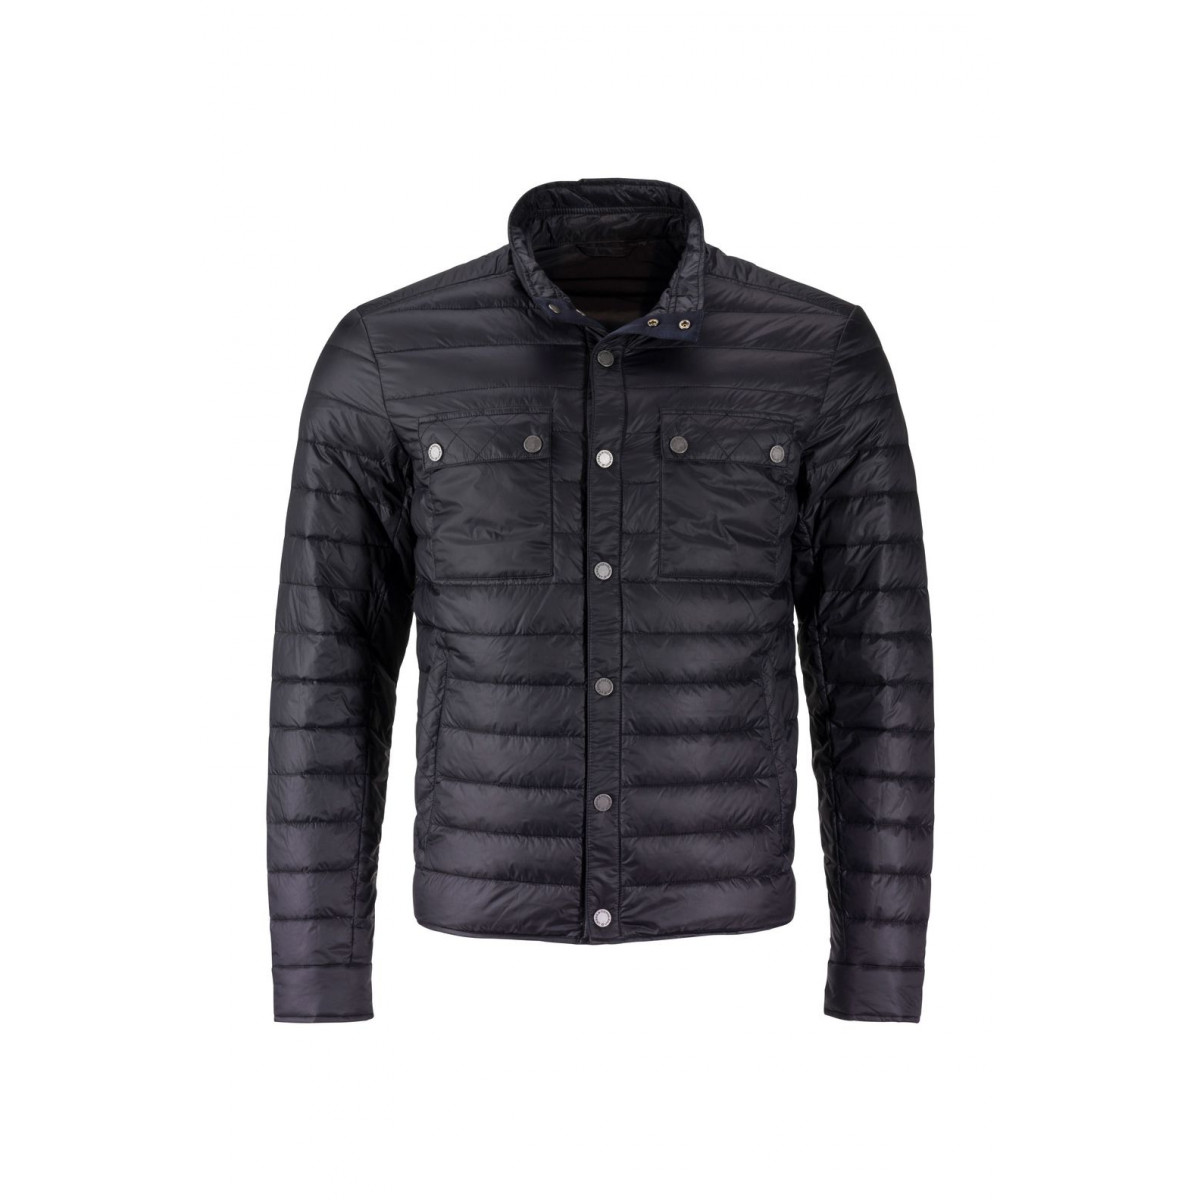 Куртка мужская JN1106 Mens Lightweight Down Jacket - Черный